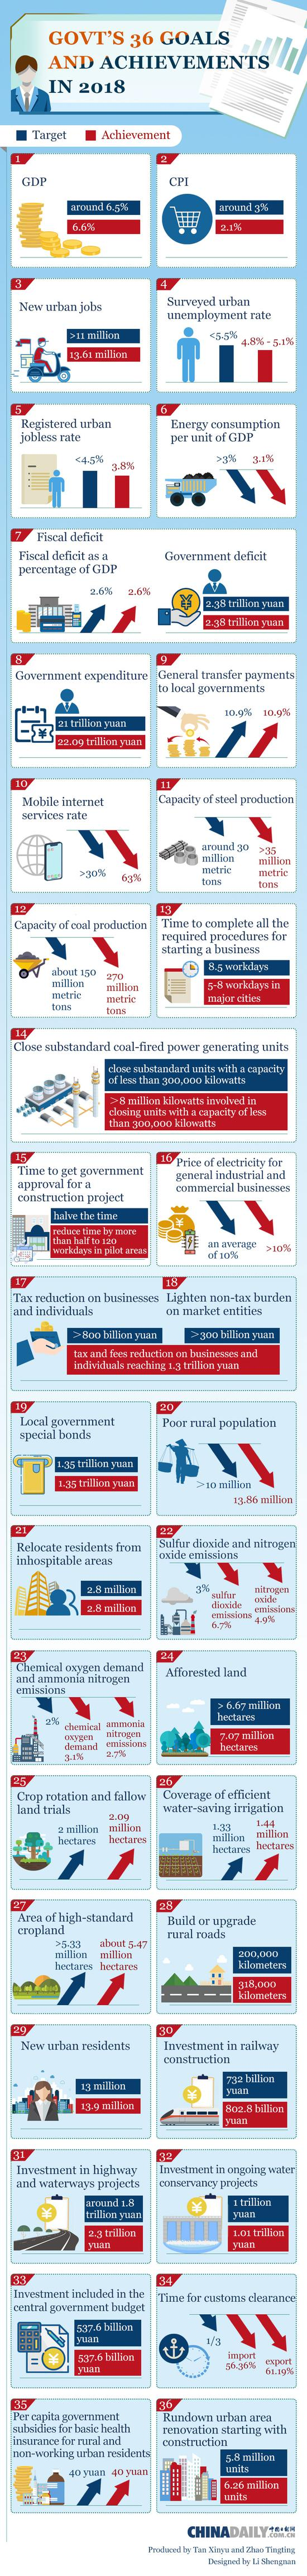 Government's 36 goals and achievements in 2018